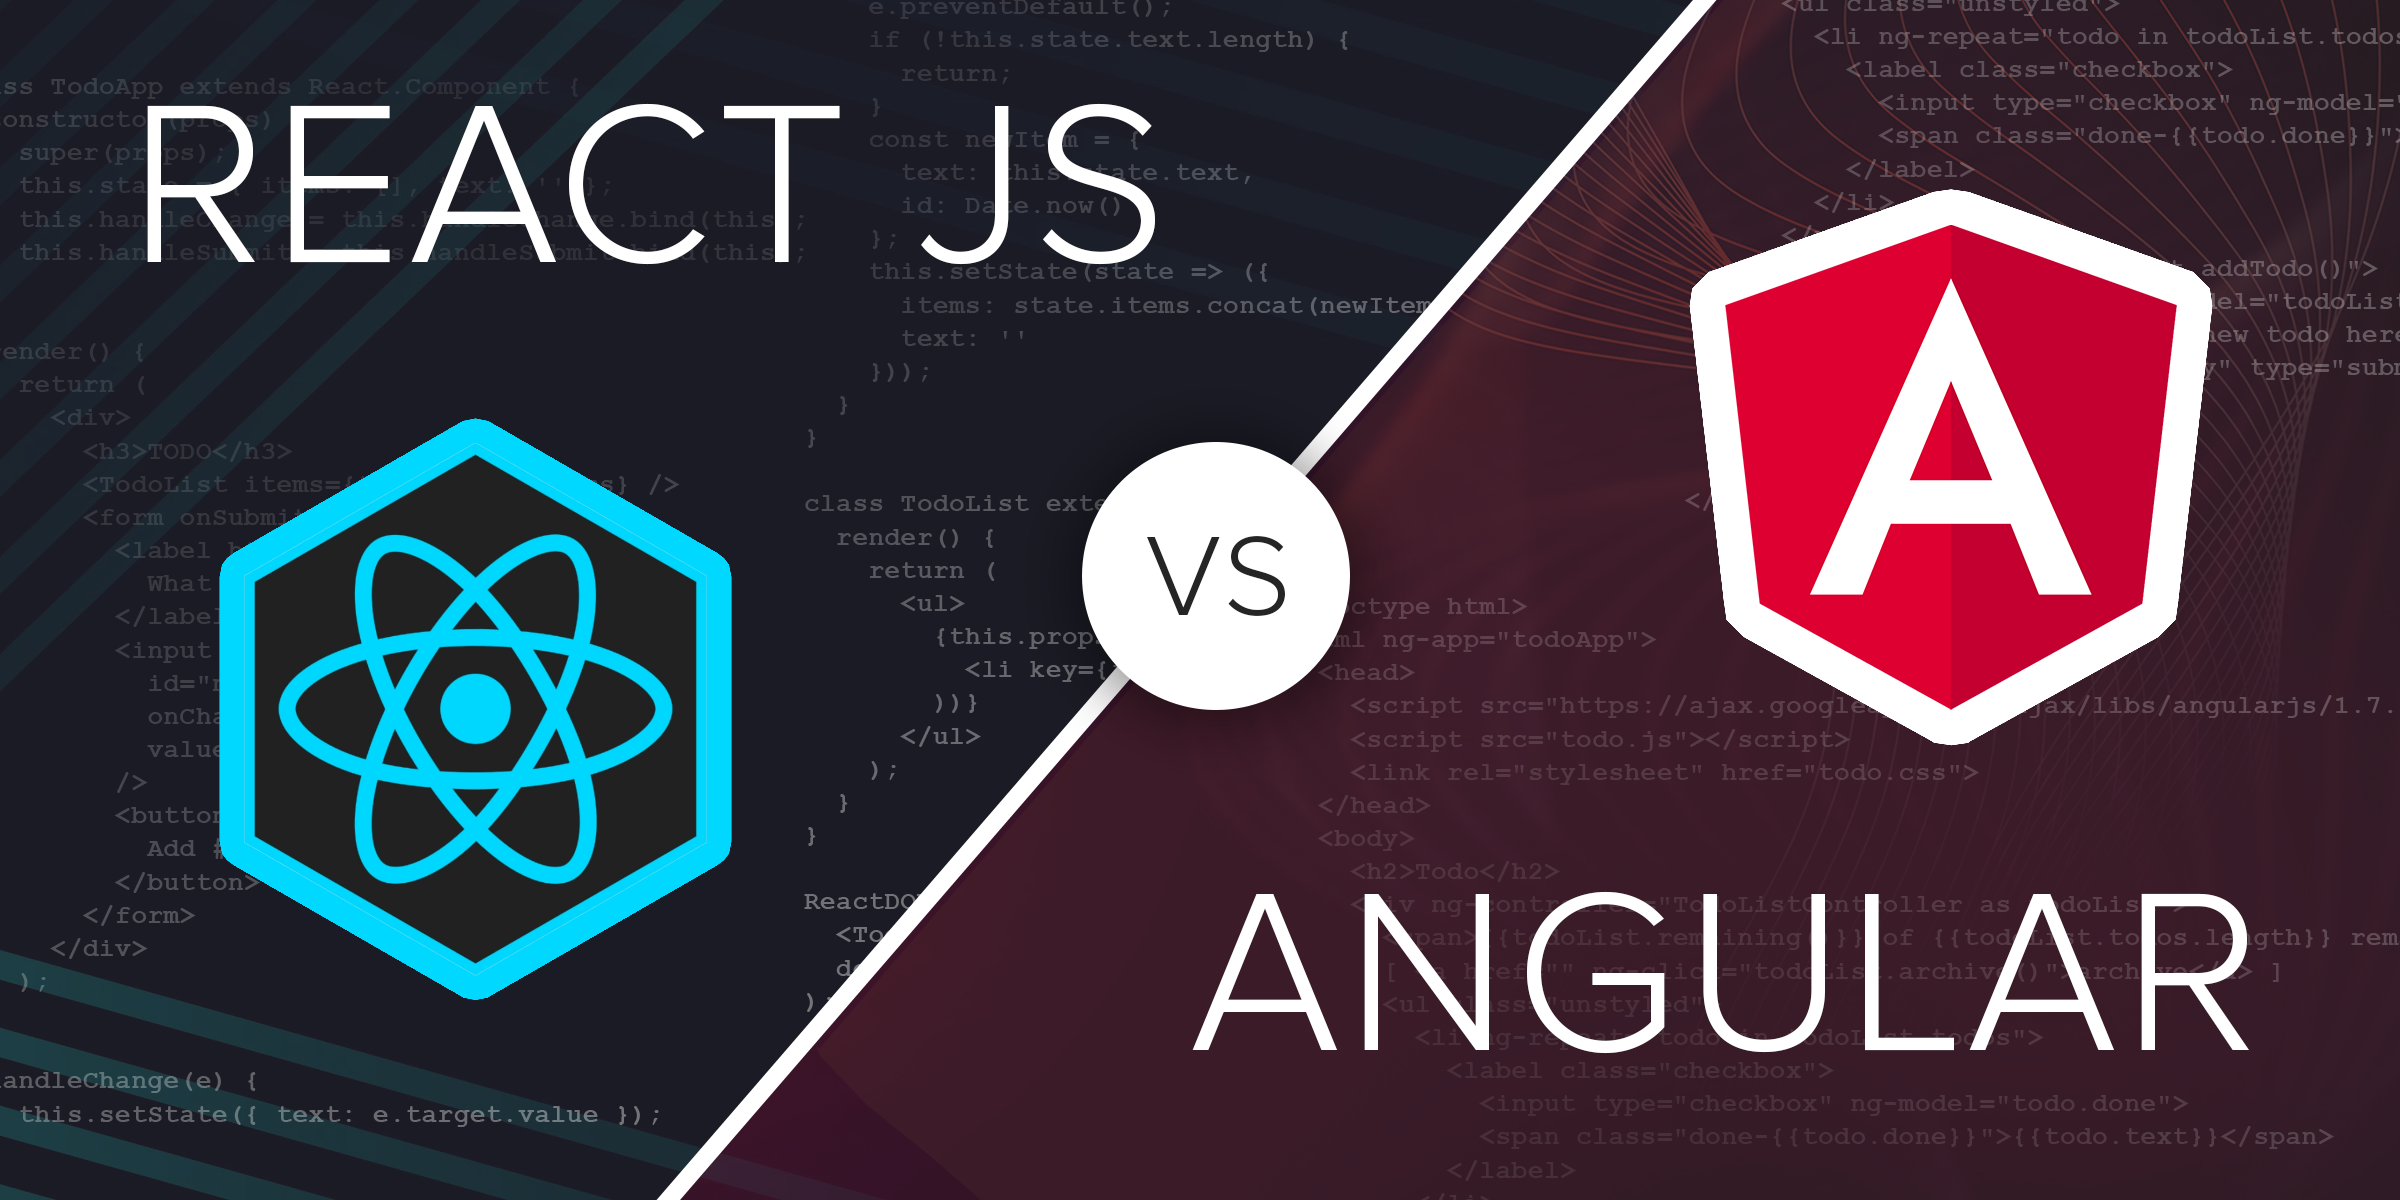 Angular vs. React vs. Vue - what is the future of front end web development